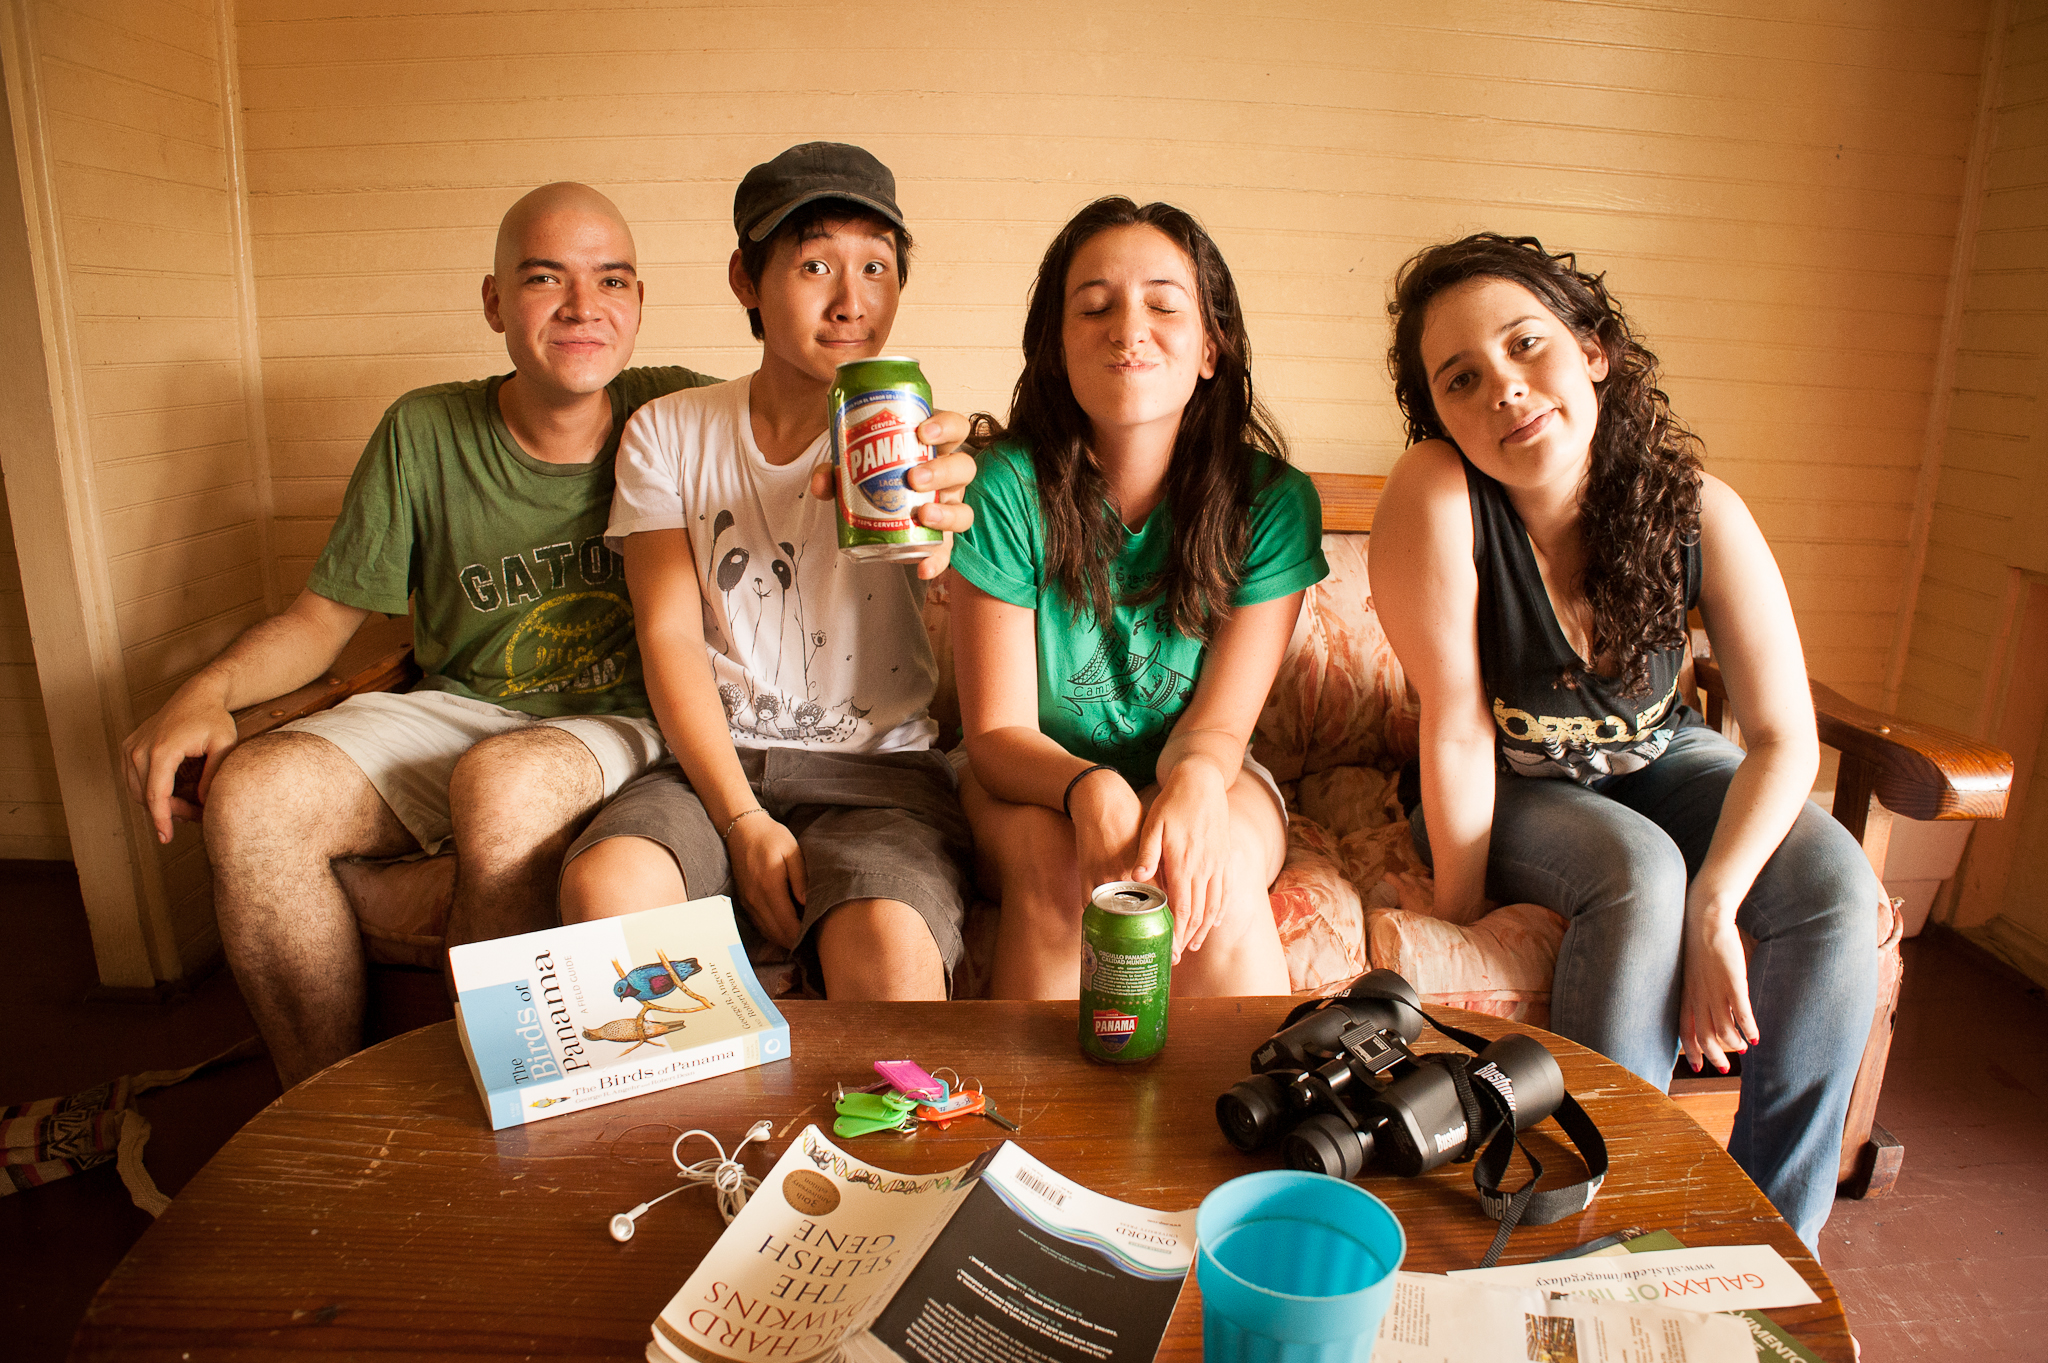 friends-sitting-table-photographer-Alex Tran